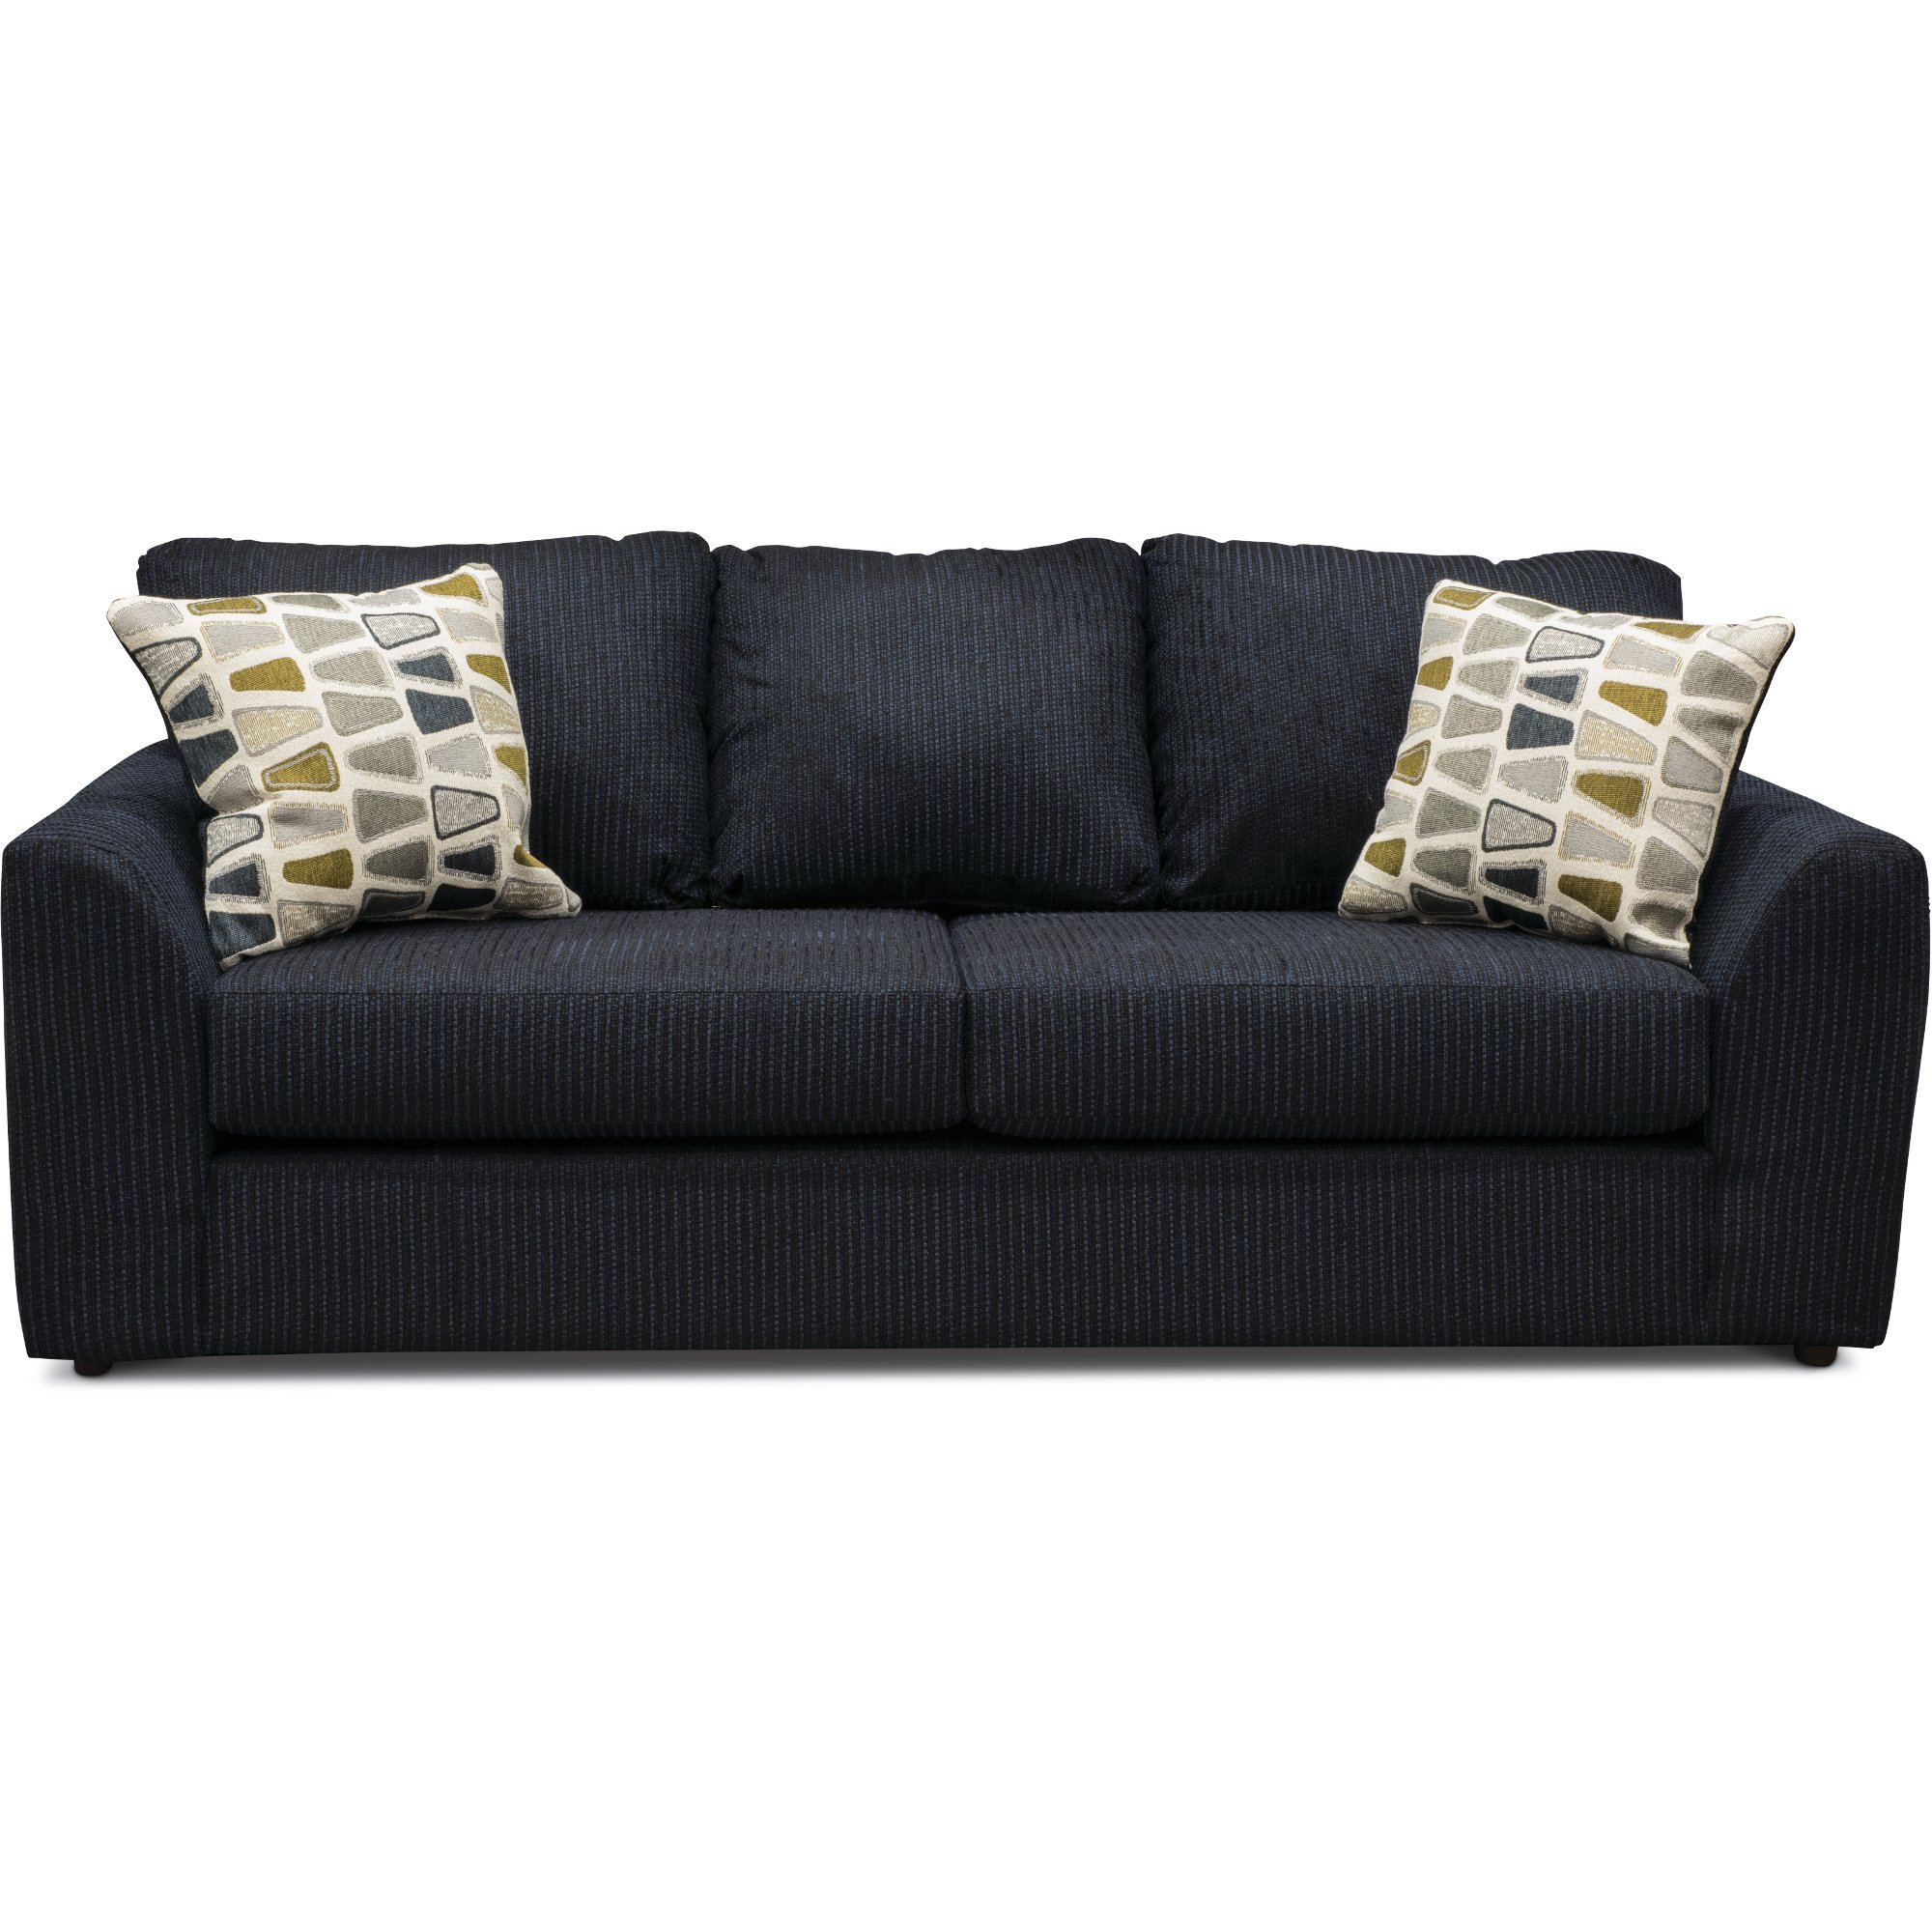 Casual Contemporary Dark Blue Sofa   Hannah   RC Willey Furniture Store